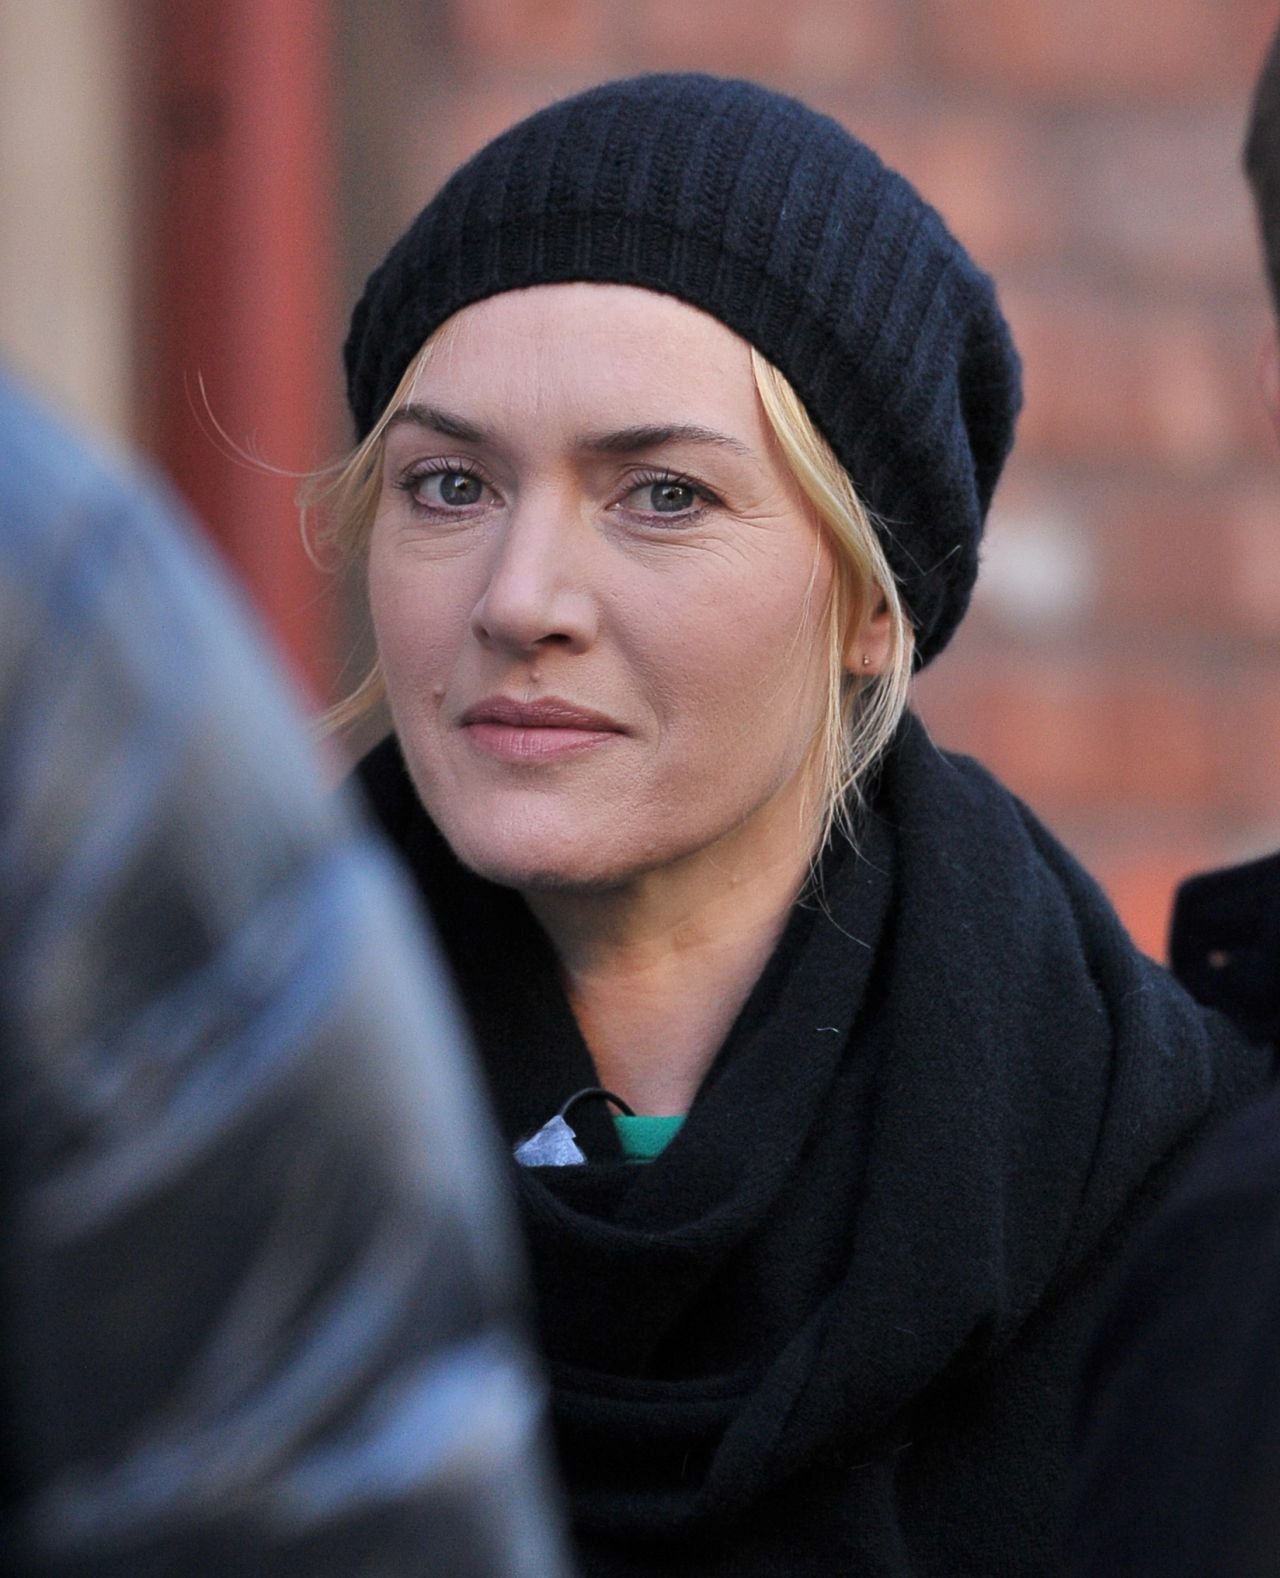 kate-winslet-collateral-beauty-set-in-new-york-city-2-26-2016-5.jpg